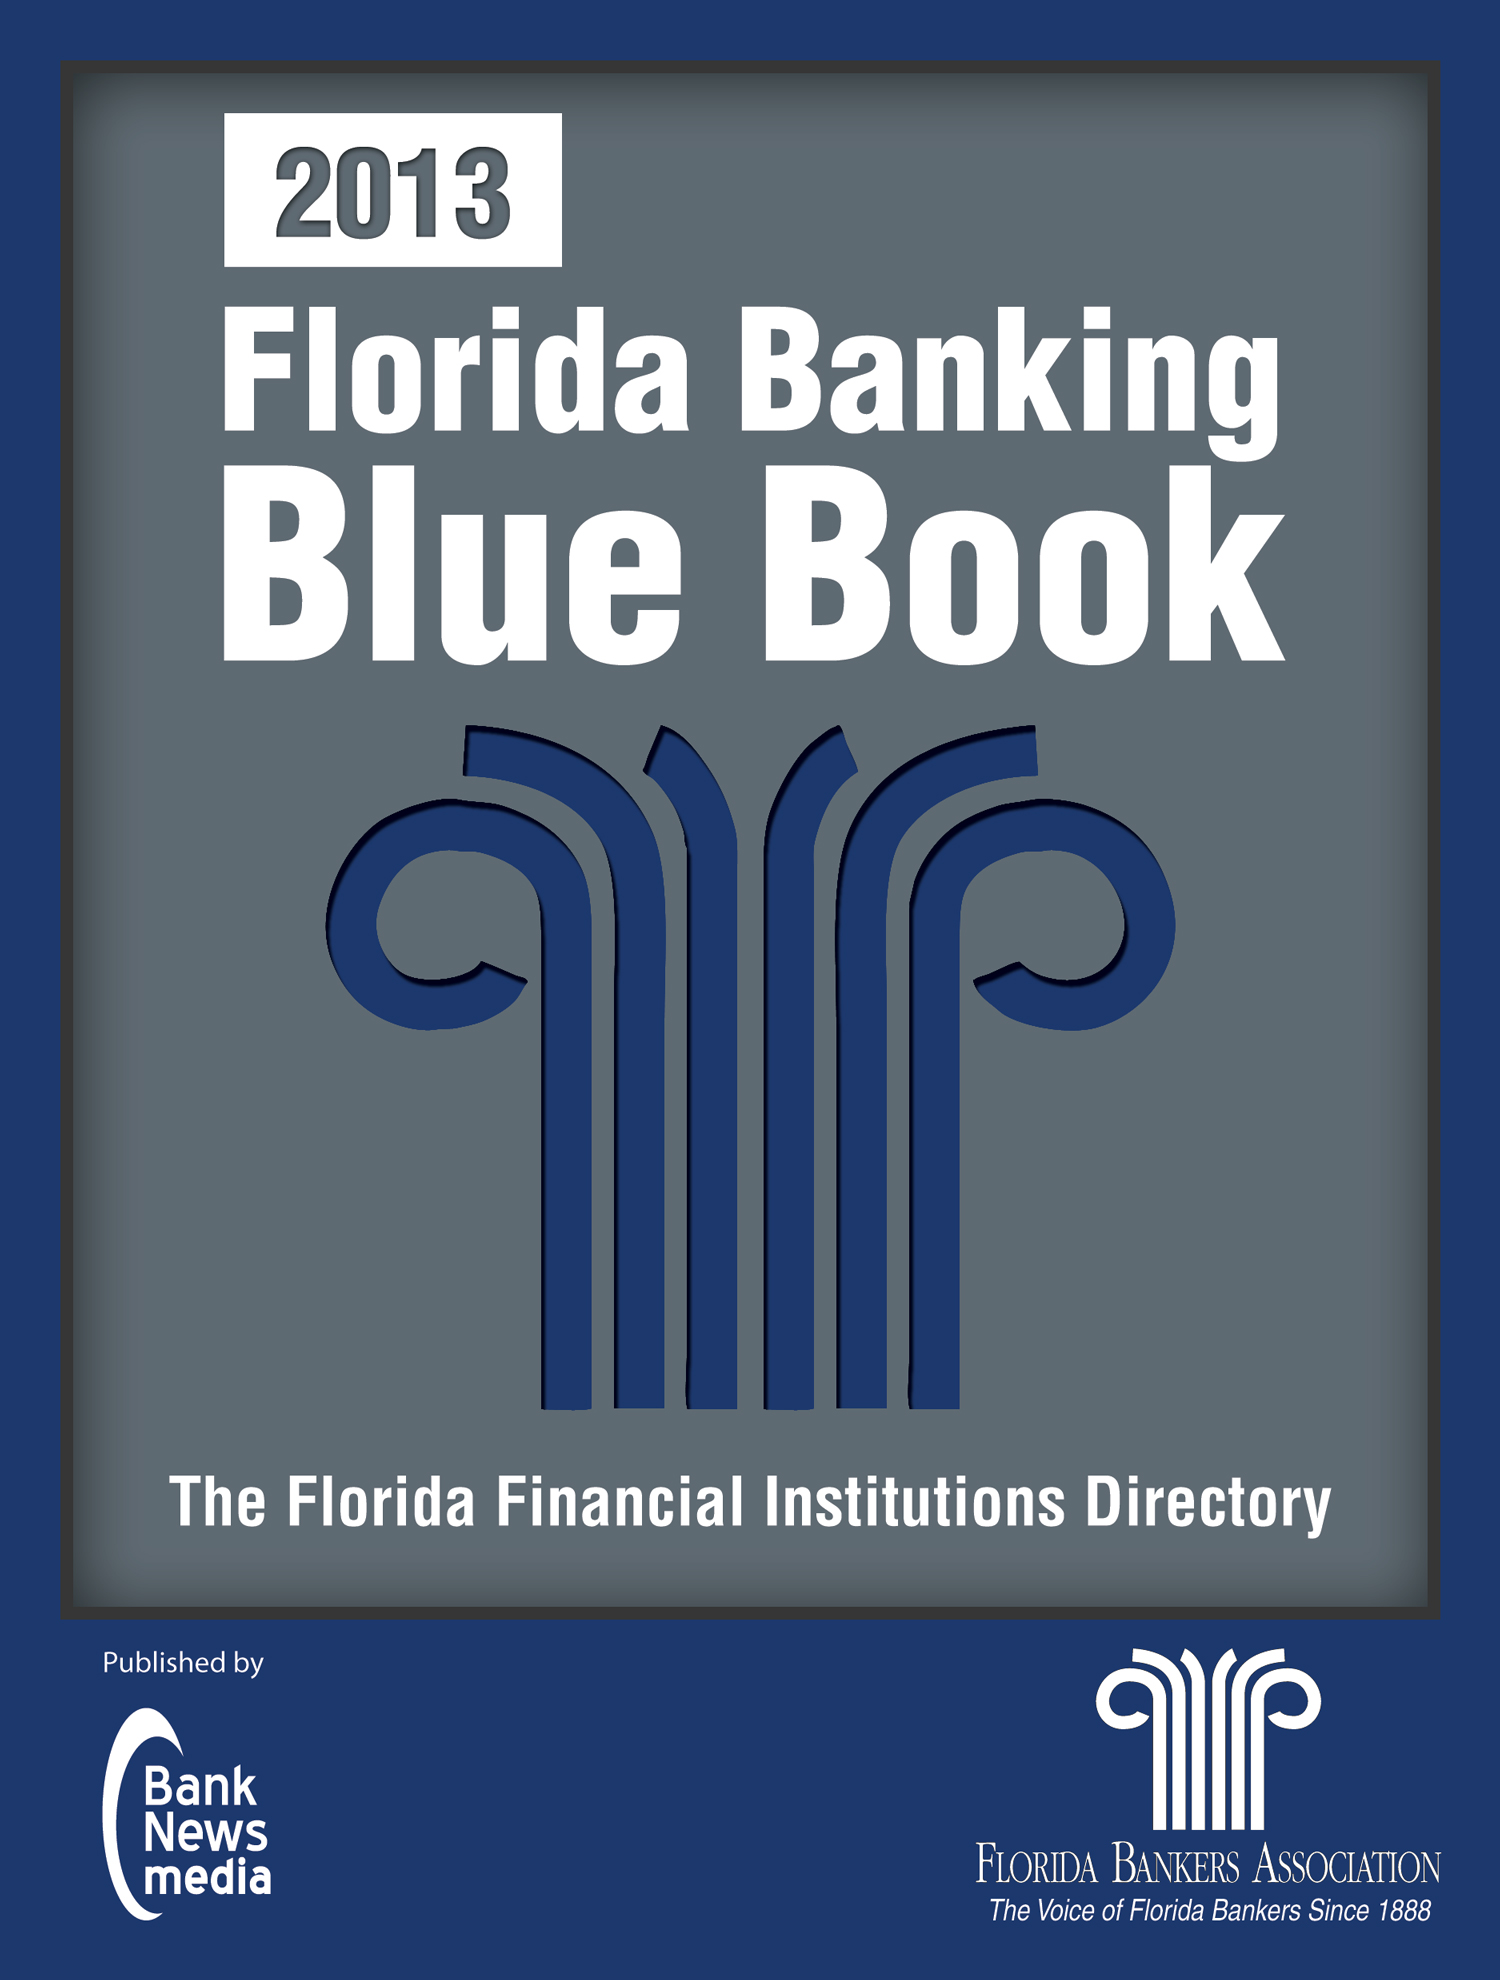 2013 Florida Banking Blue Book Print - $150.00 Non-Member - Availble December 2012